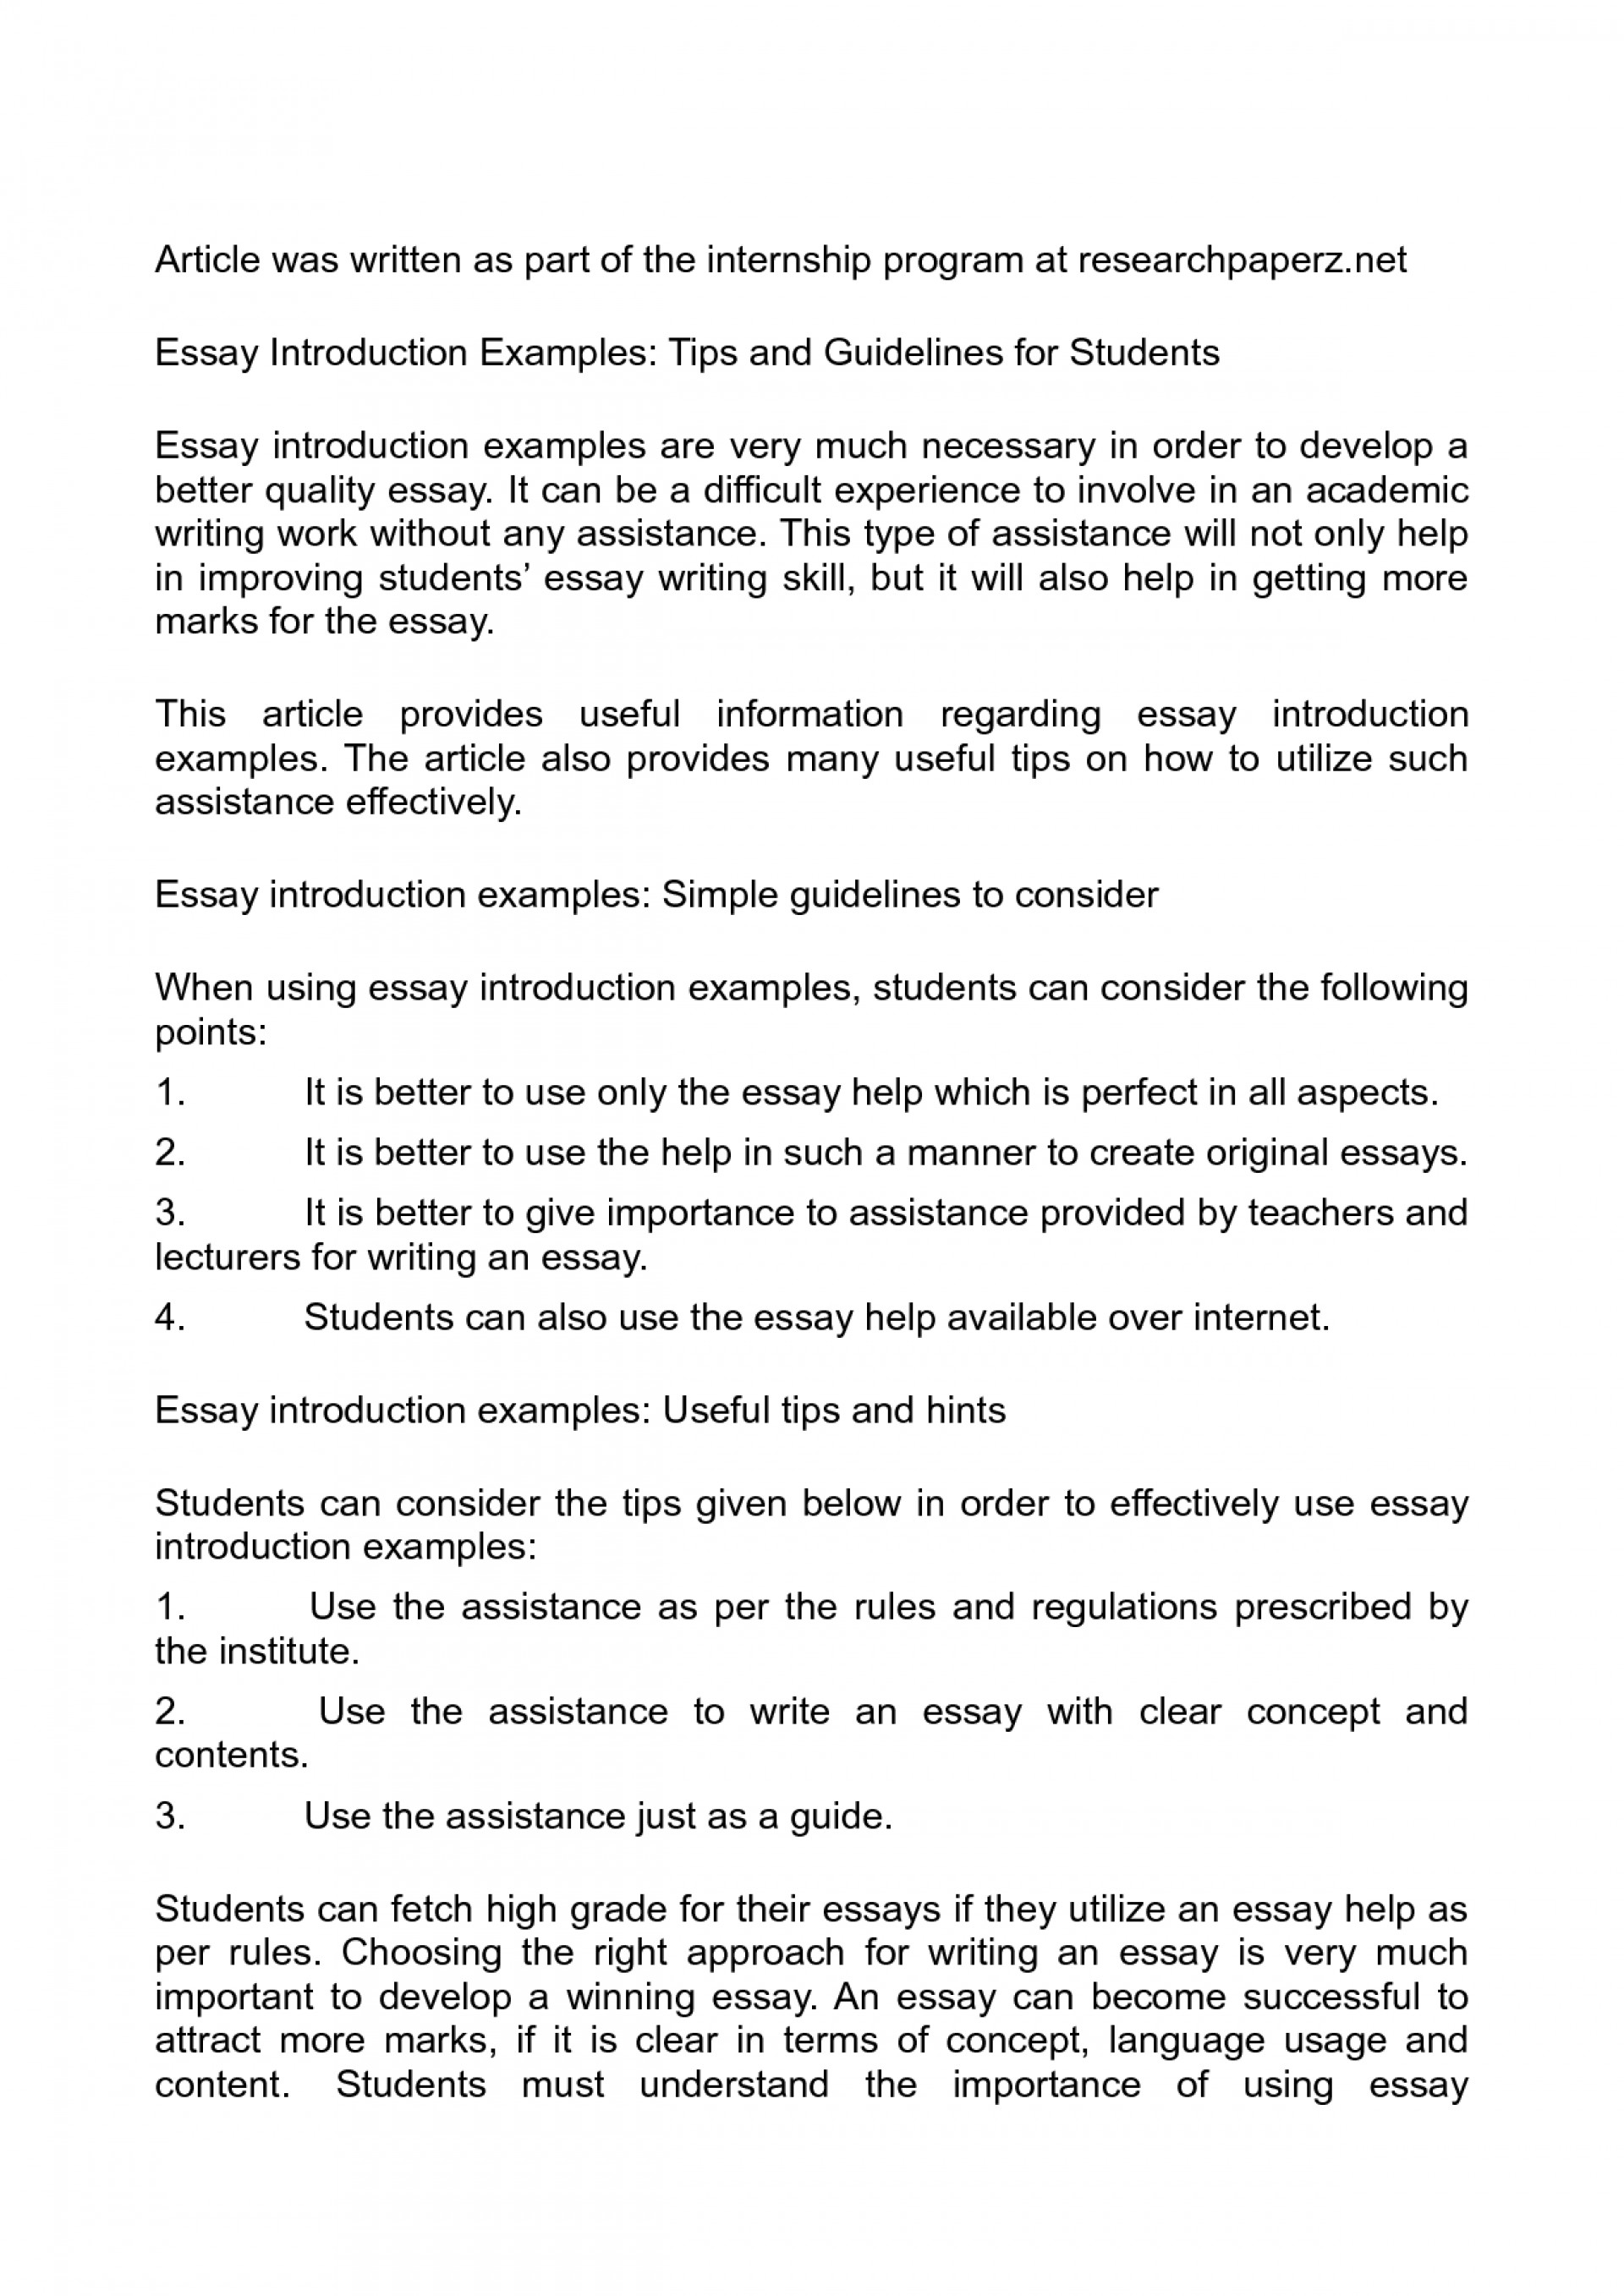 005 Eyx5t6okob Good Intros For Essays Essay Unusual Introductions Research Papers Examples Pdf Expository 1920